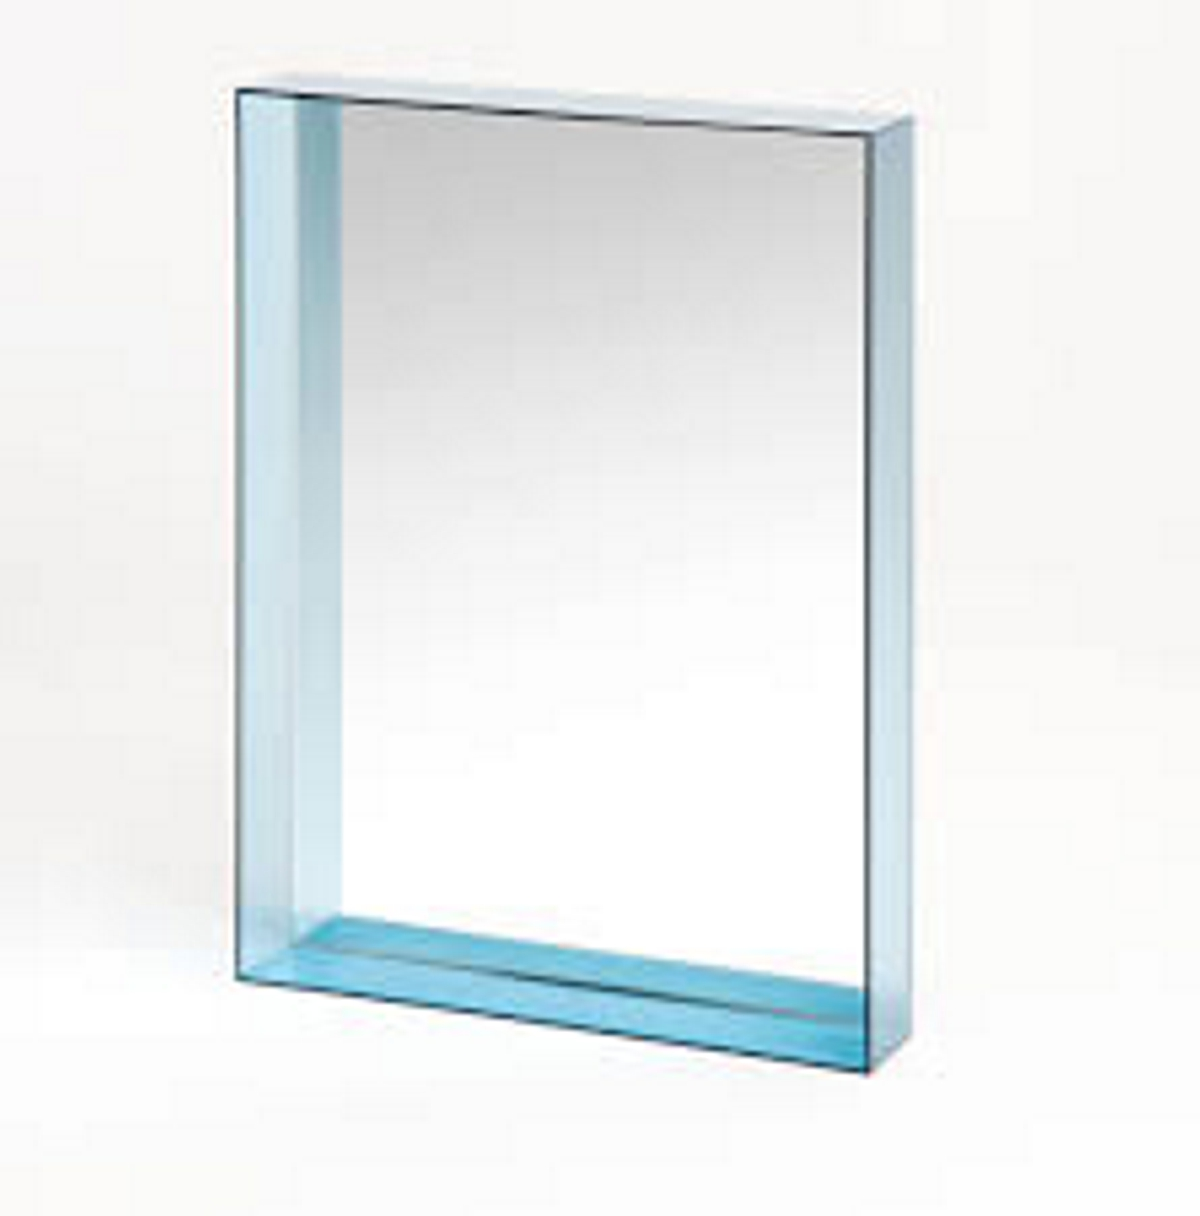 Kartell Only Me Wall Mirrors 50cm x 70cm 50cm x 70cm Azure